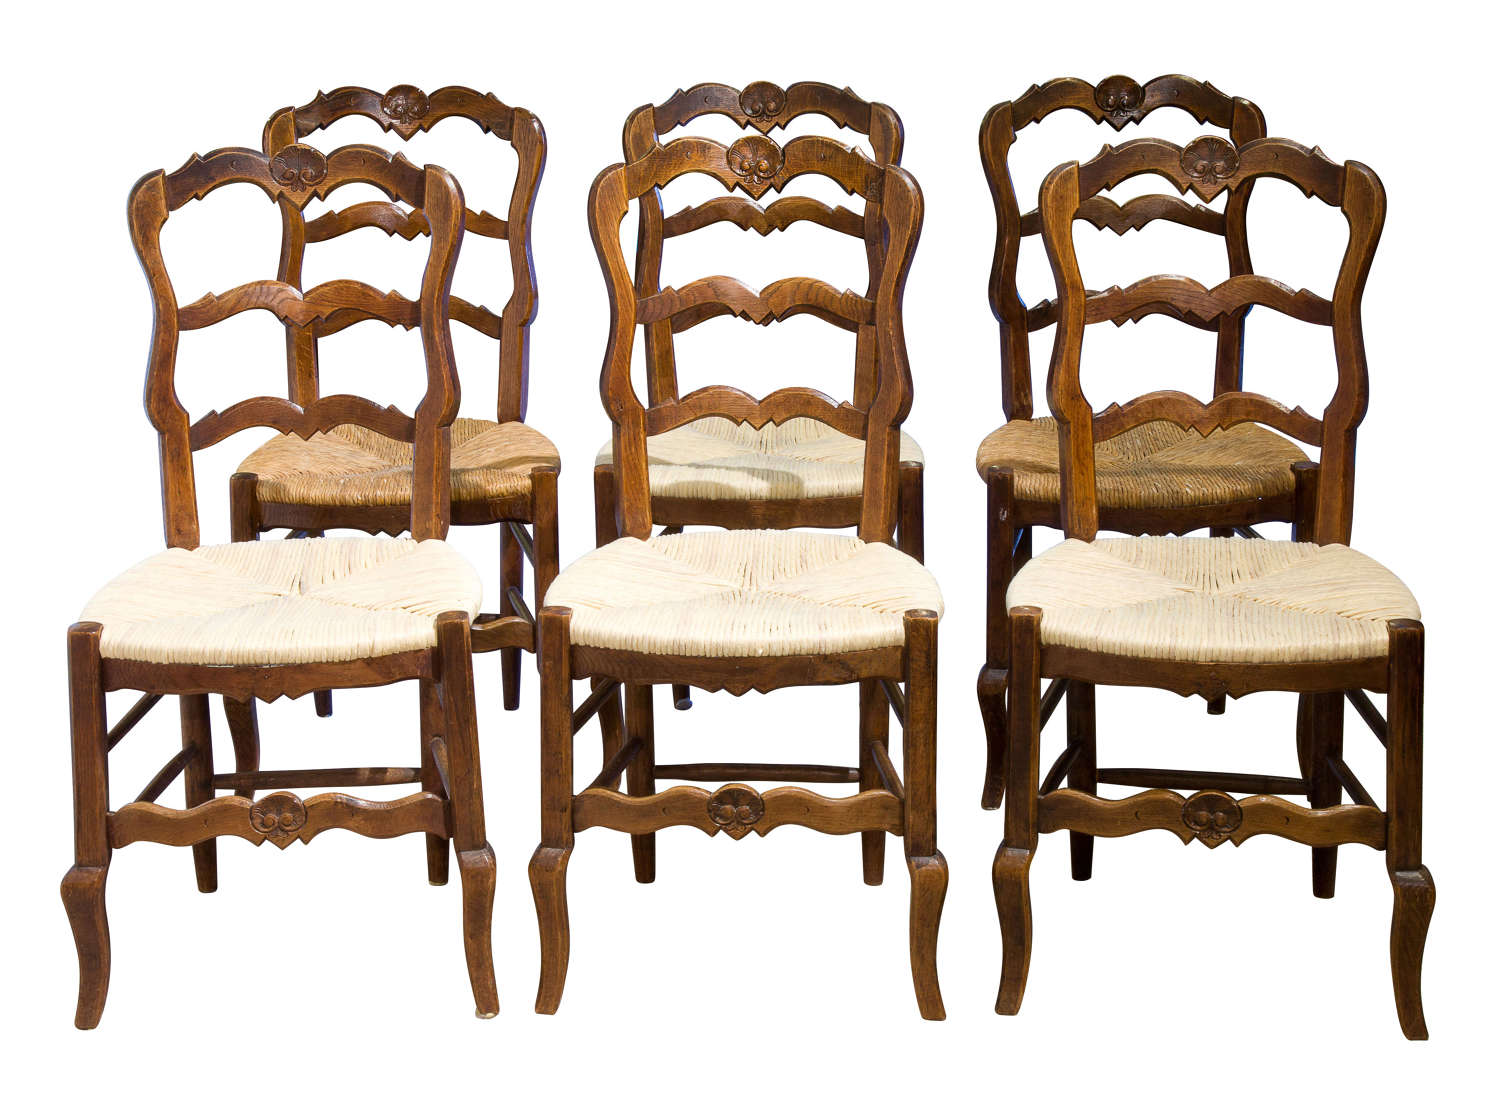 Set of 6 French oak ladderback chairs